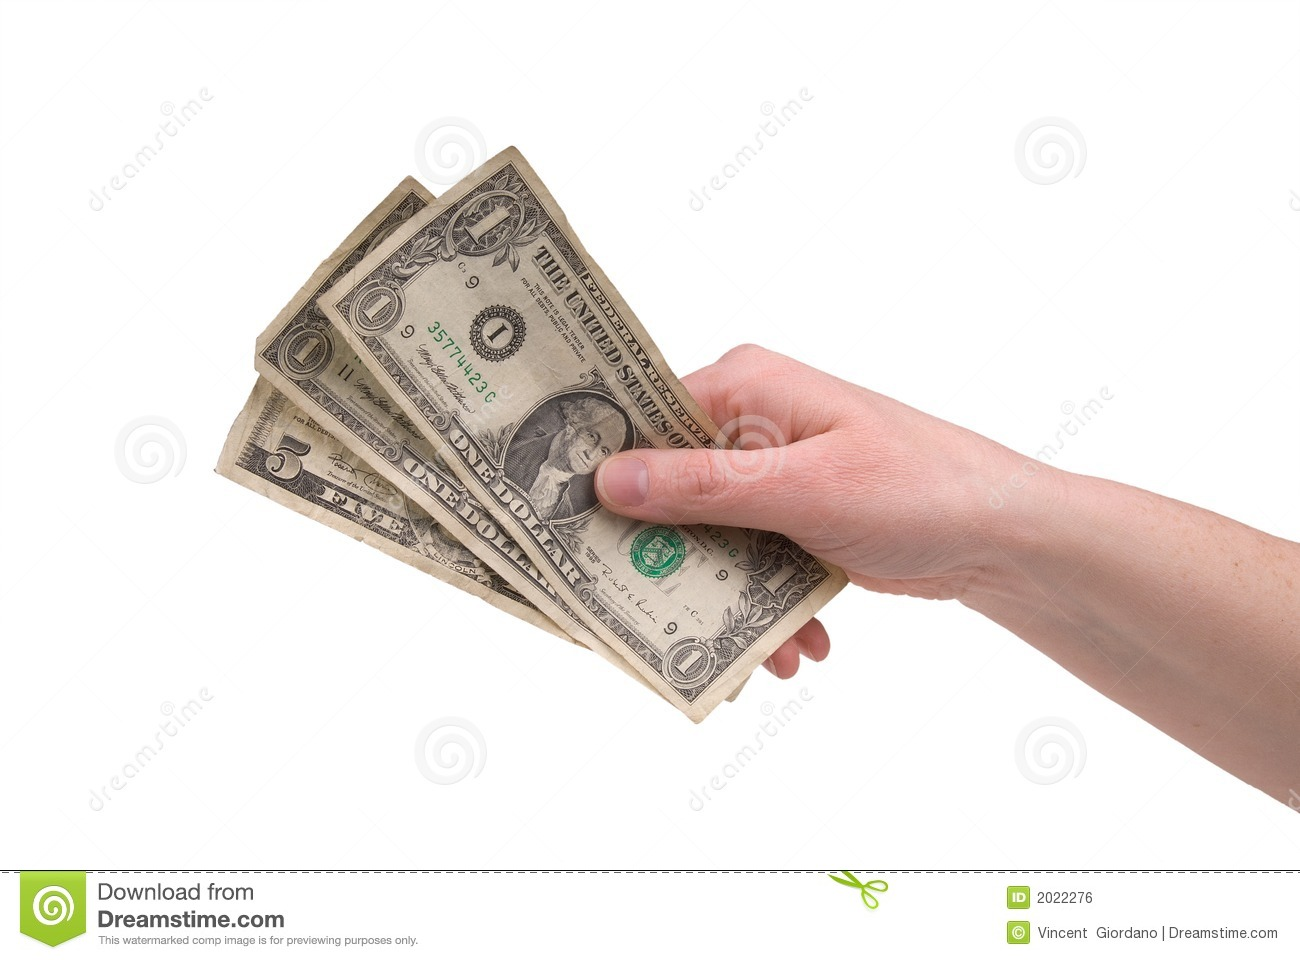 Woman's Hand Holding Money Royalty Free Stock Image ...Holding Money In Hand